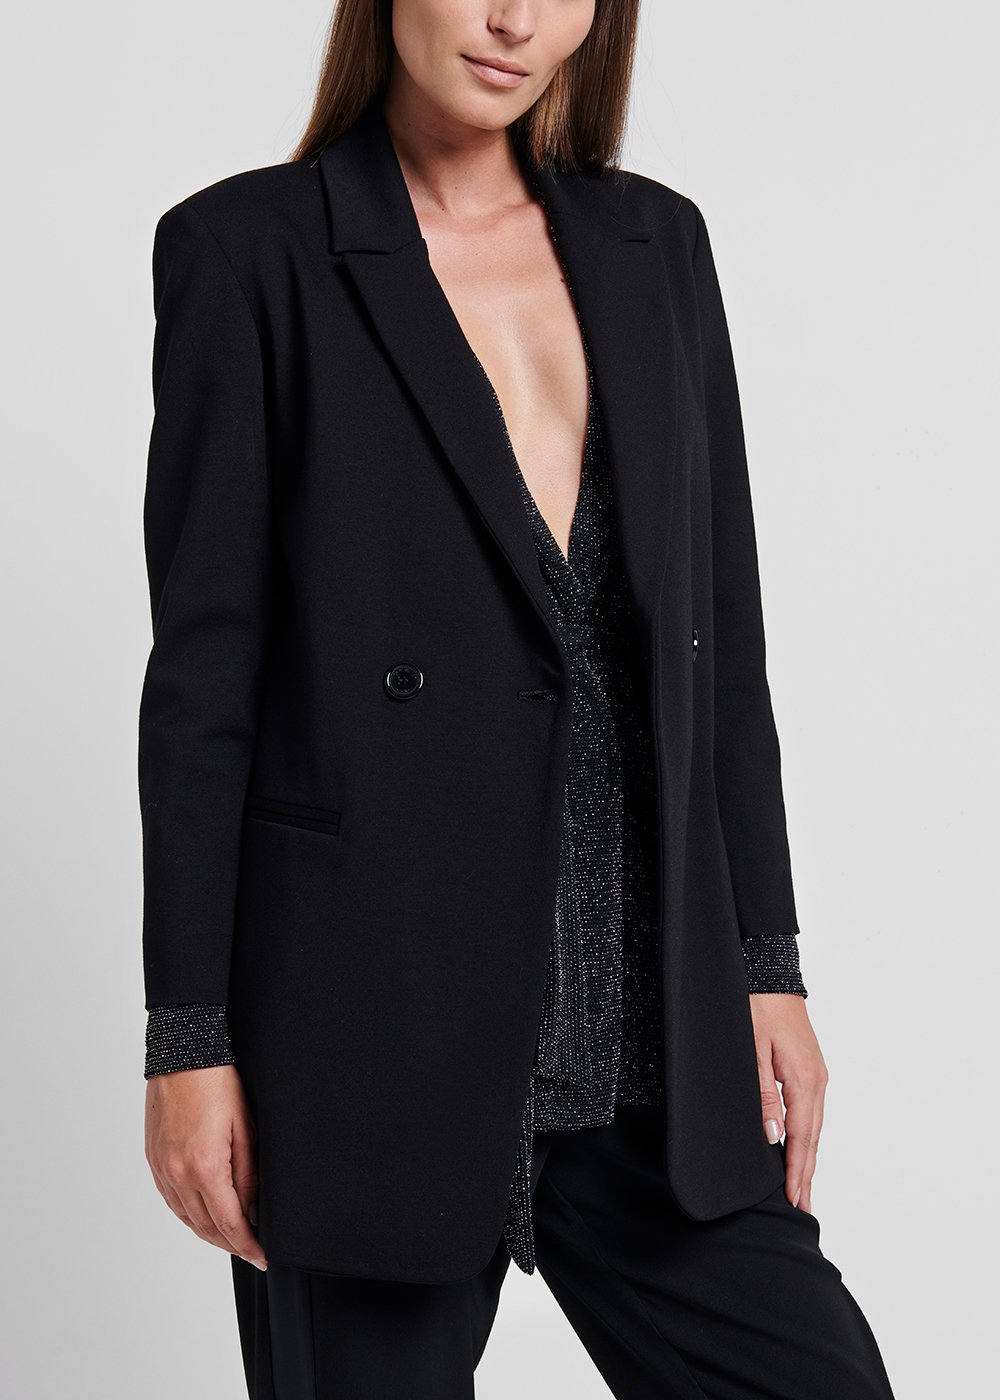 Double - breasted jacket - Black - Woman